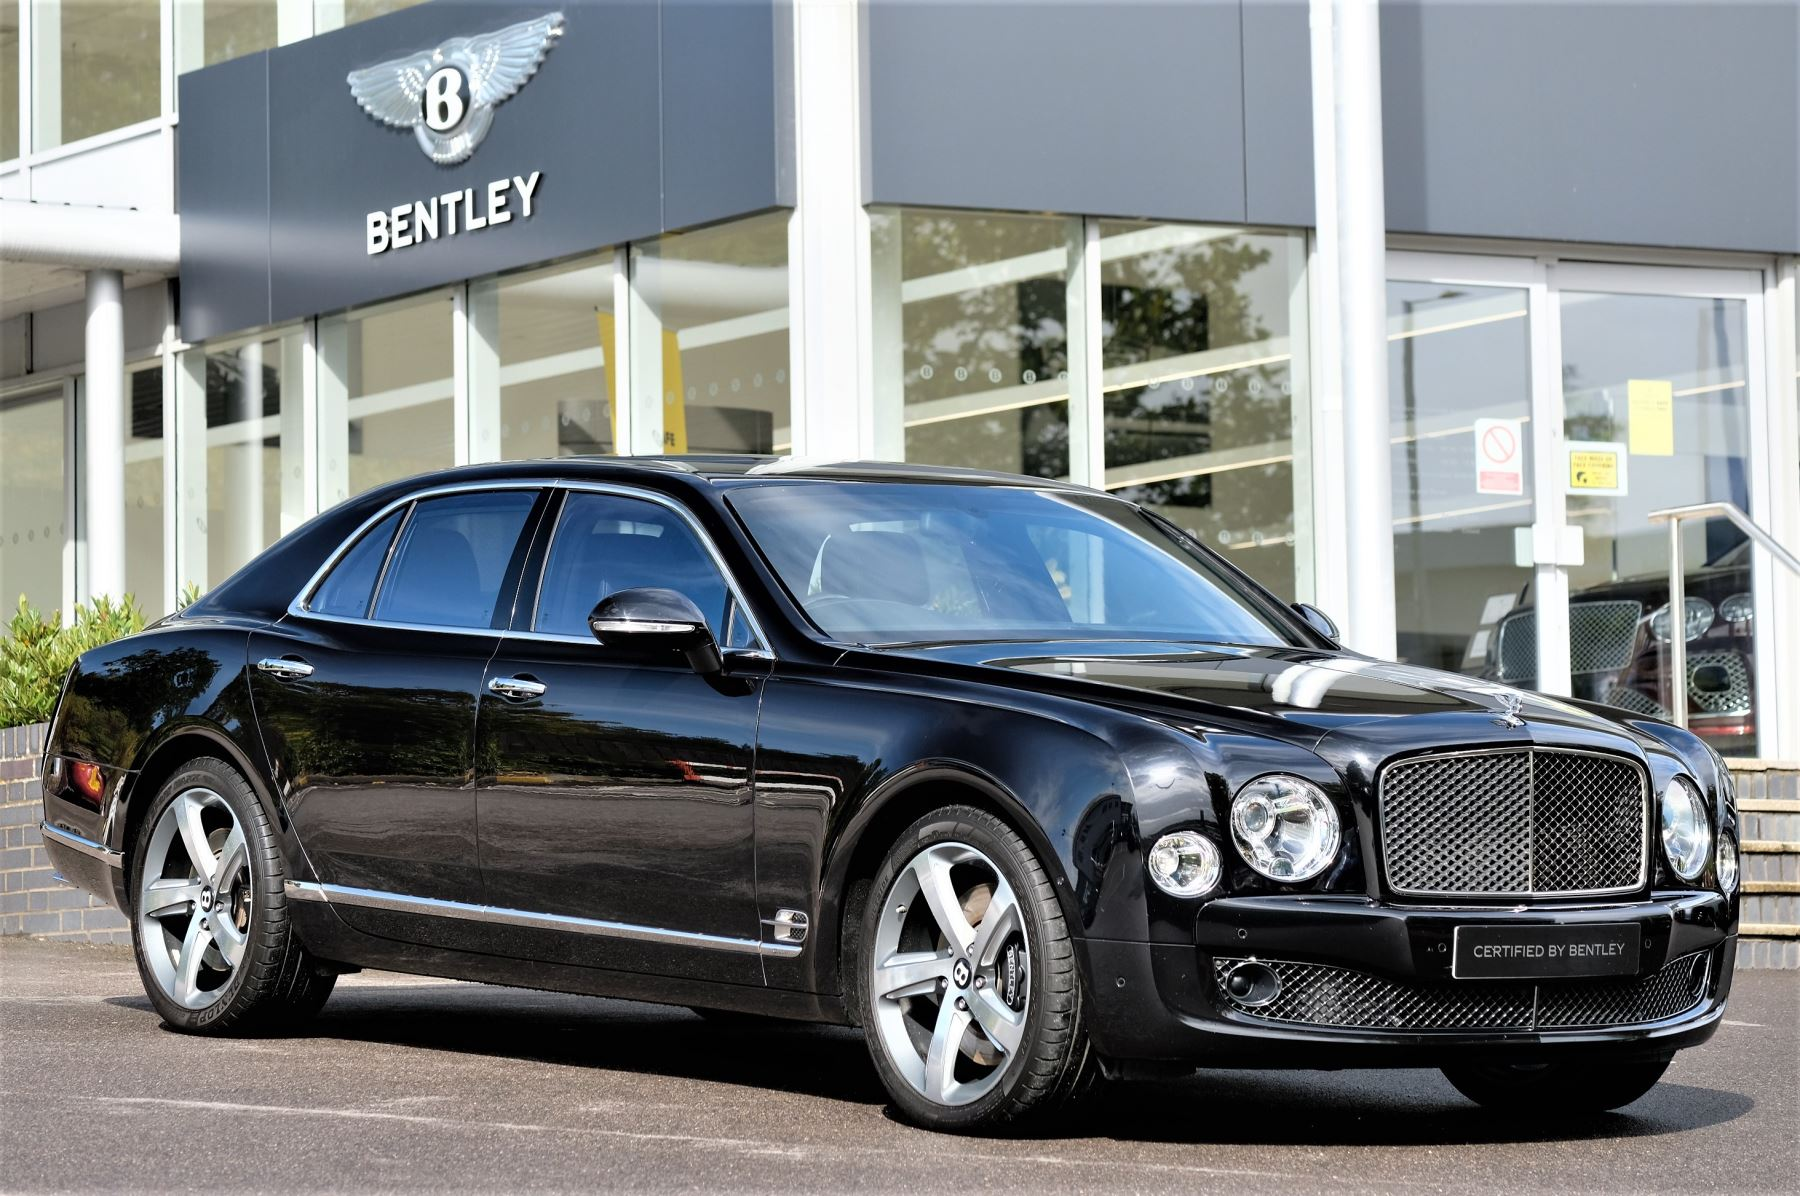 Bentley Mulsanne 6.8 V8 Speed Automatic 4 door Saloon (2015)